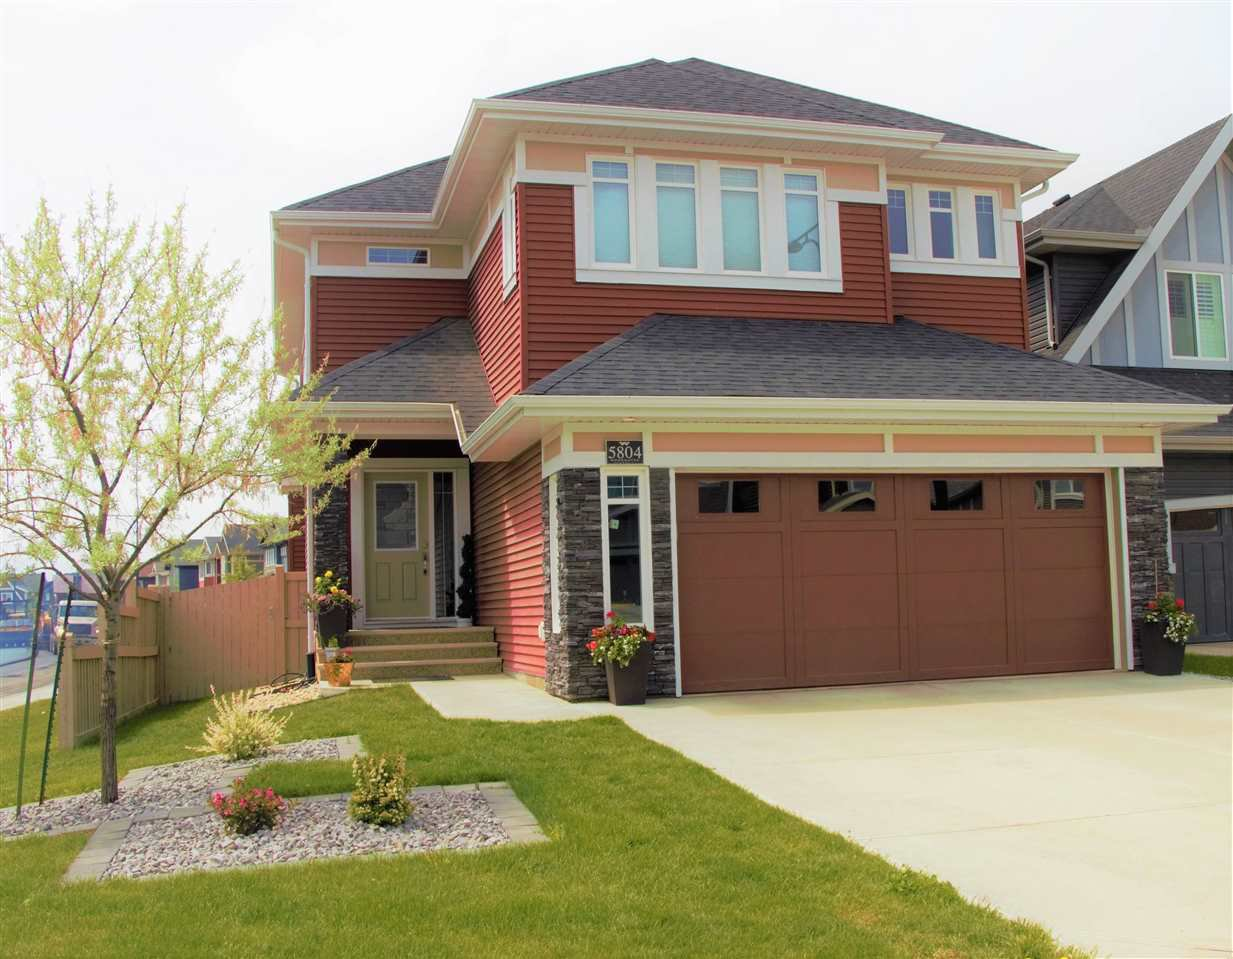 Main Photo: 5804 EDWORTHY Cove in Edmonton: Zone 57 House for sale : MLS®# E4148795